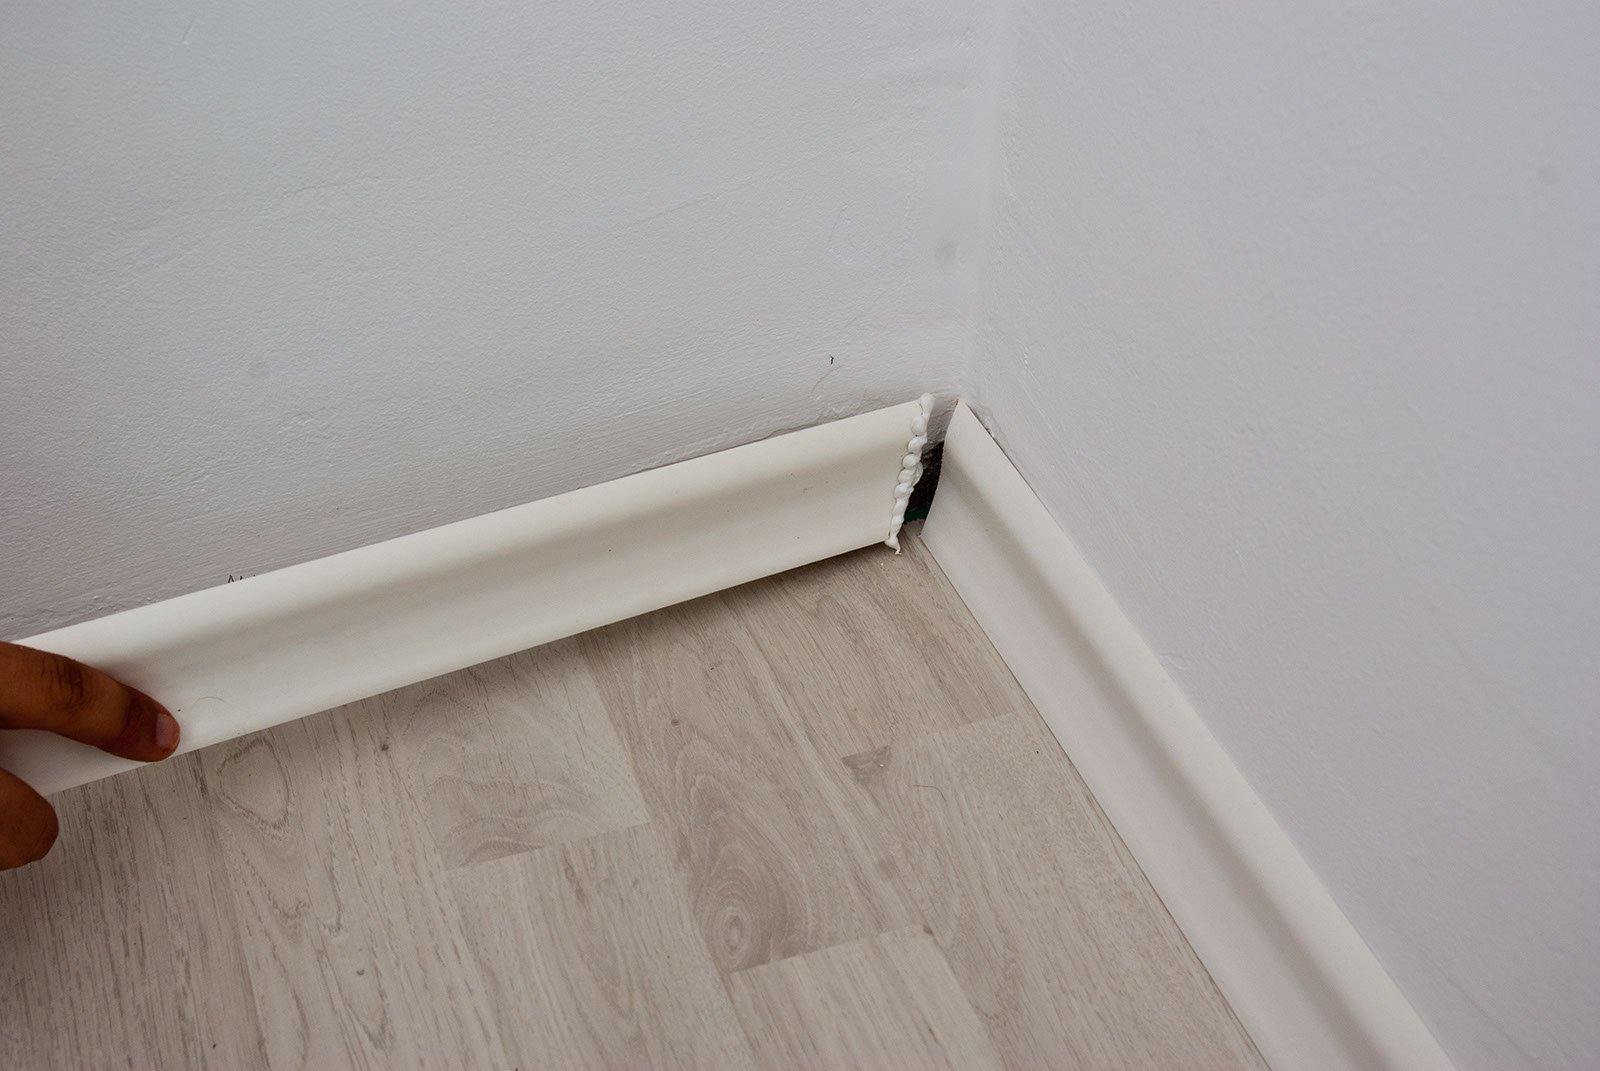 How to cut base molding in place - Joining Baseboard At Corner